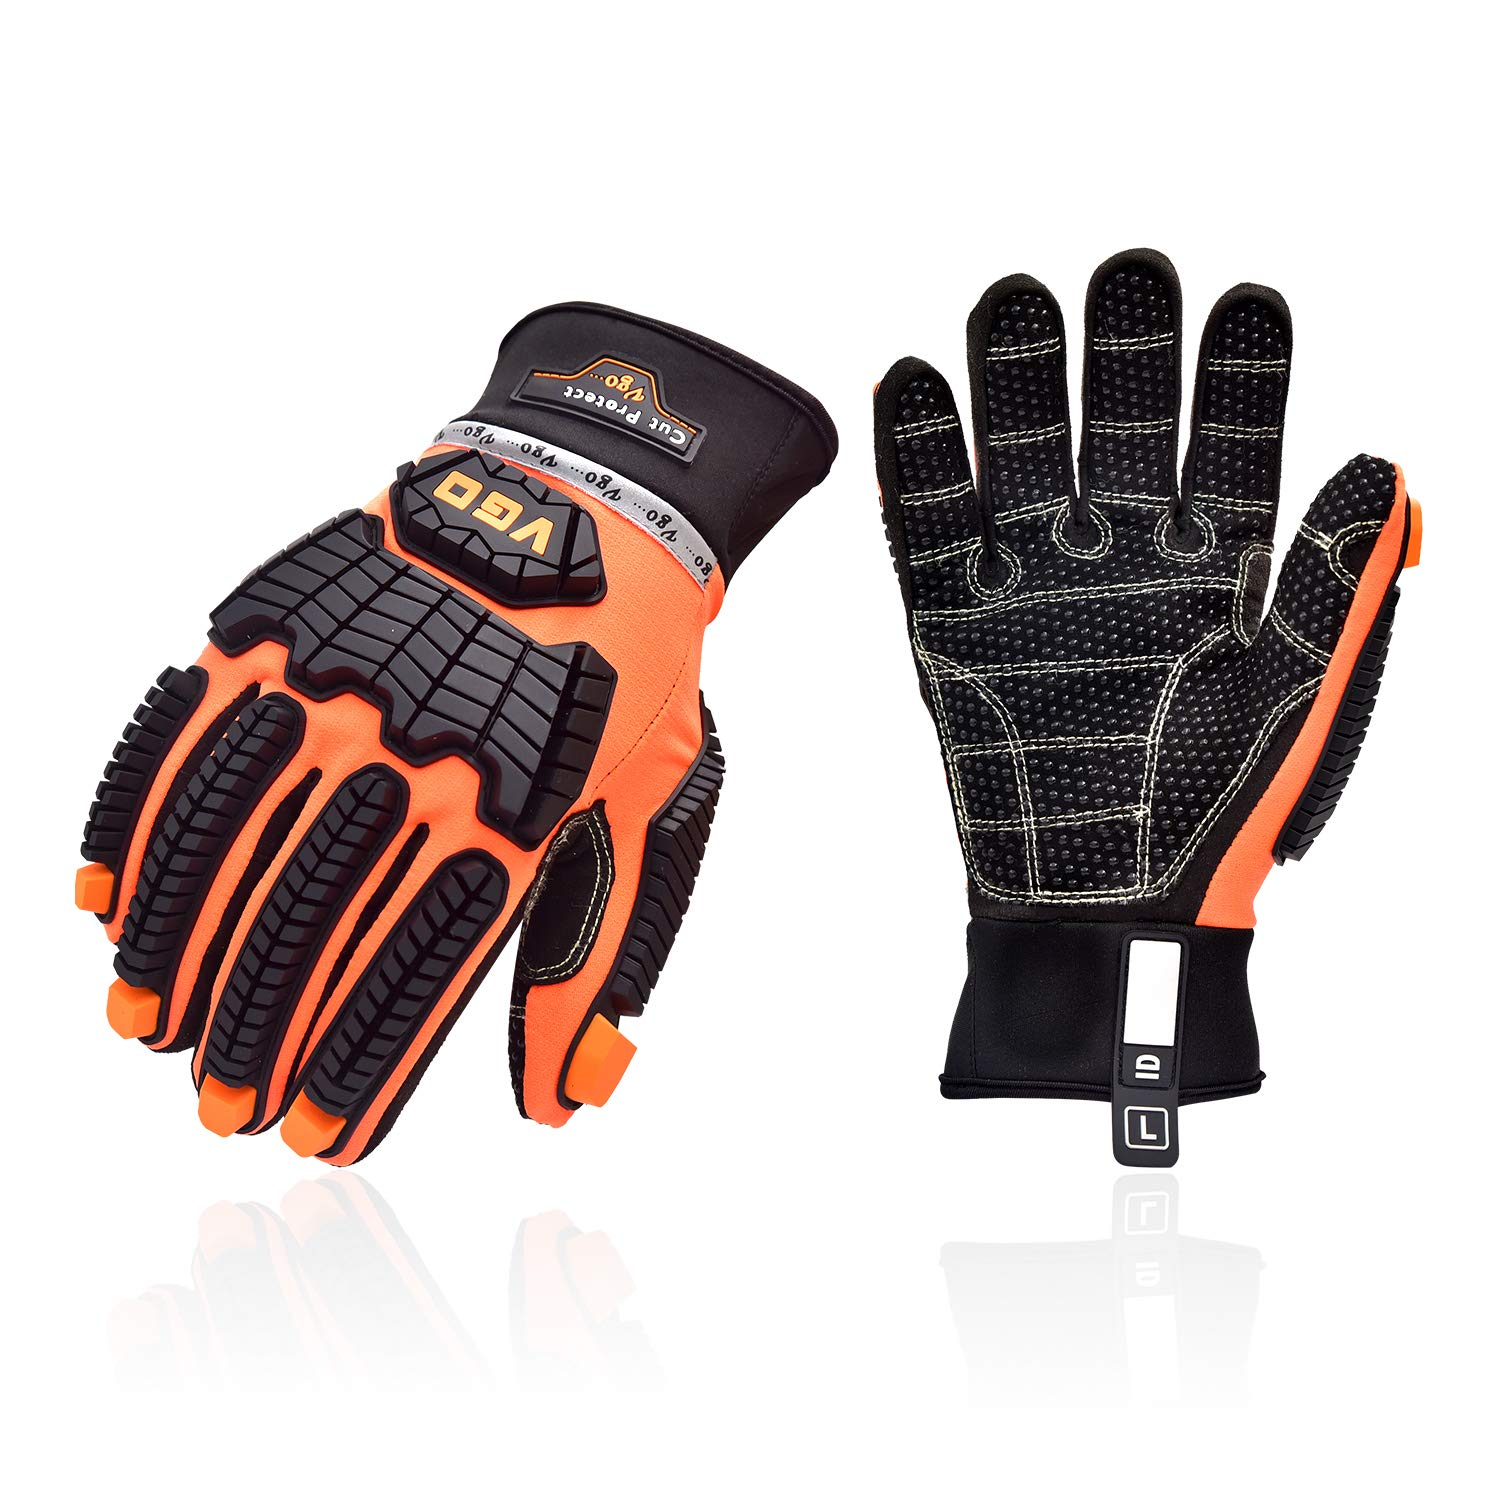 Vgo OffShore Anti Vibration Oil-proof Impact protection Water-Repellent Safety Synthetic Leather Work Glove(Size L, Orange, SL9679)